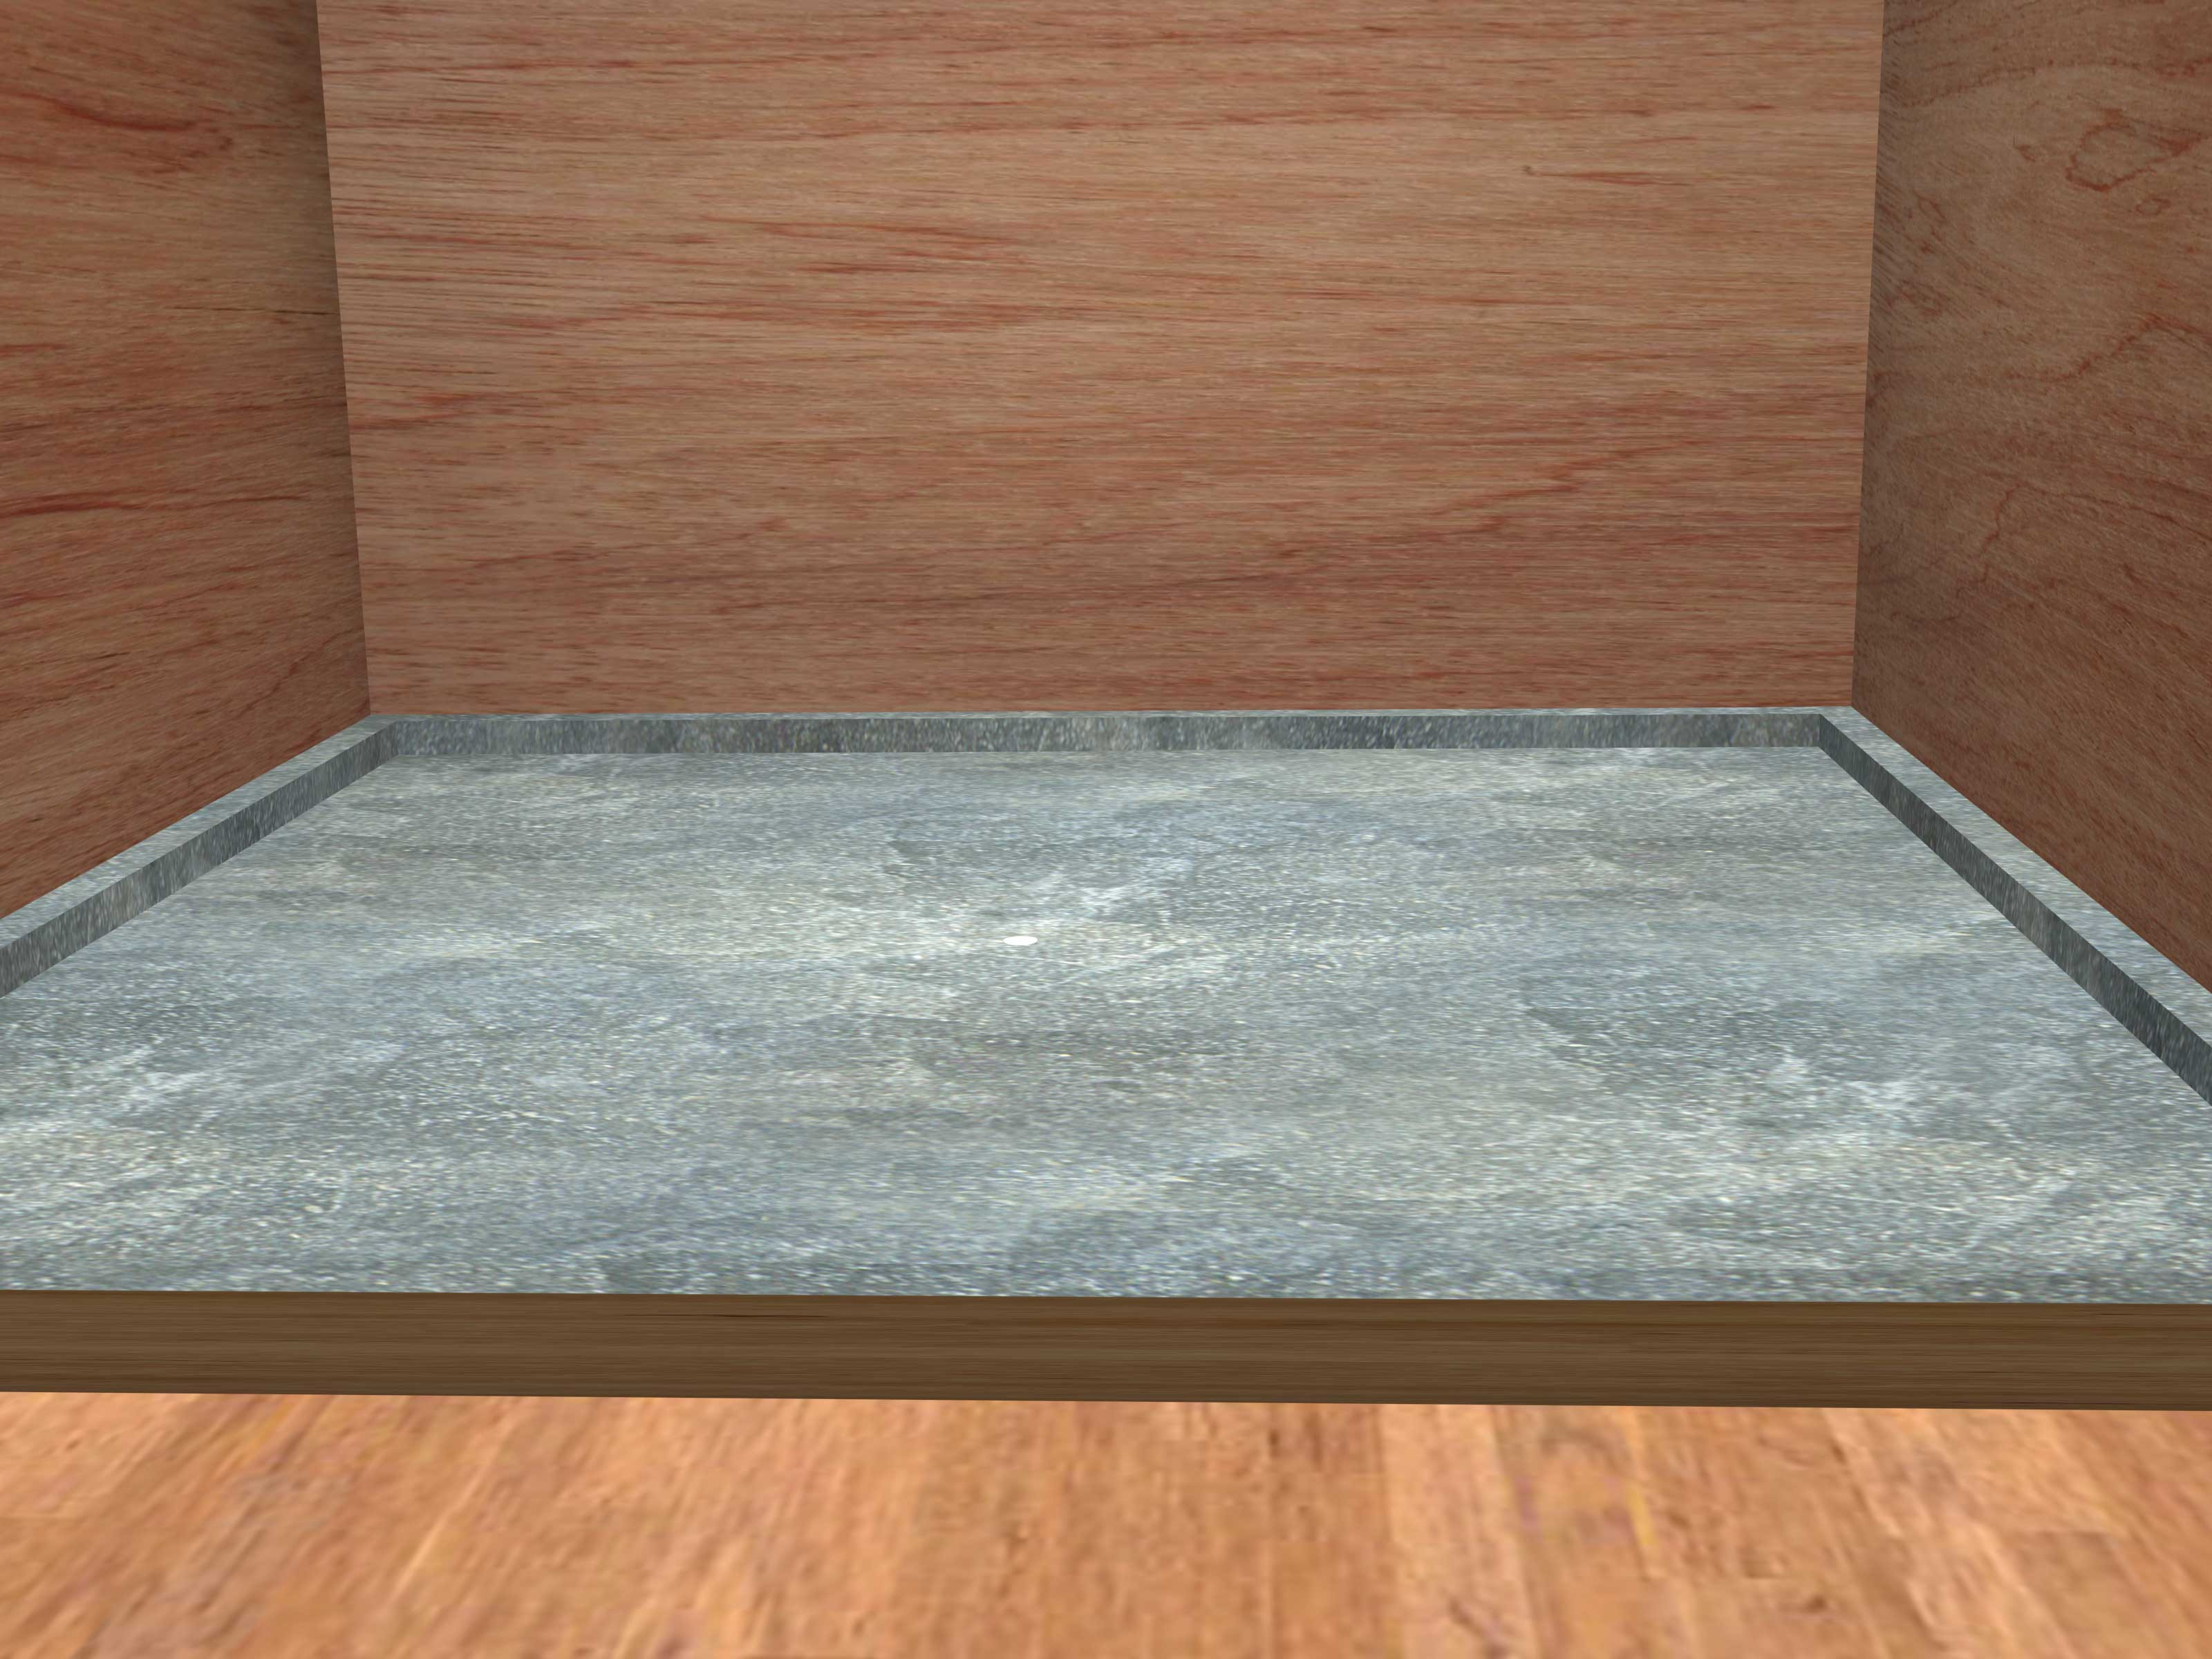 basement hardwood floor ideas of how to make a shower pan 15 steps with pictures wikihow in make a shower pan step 15